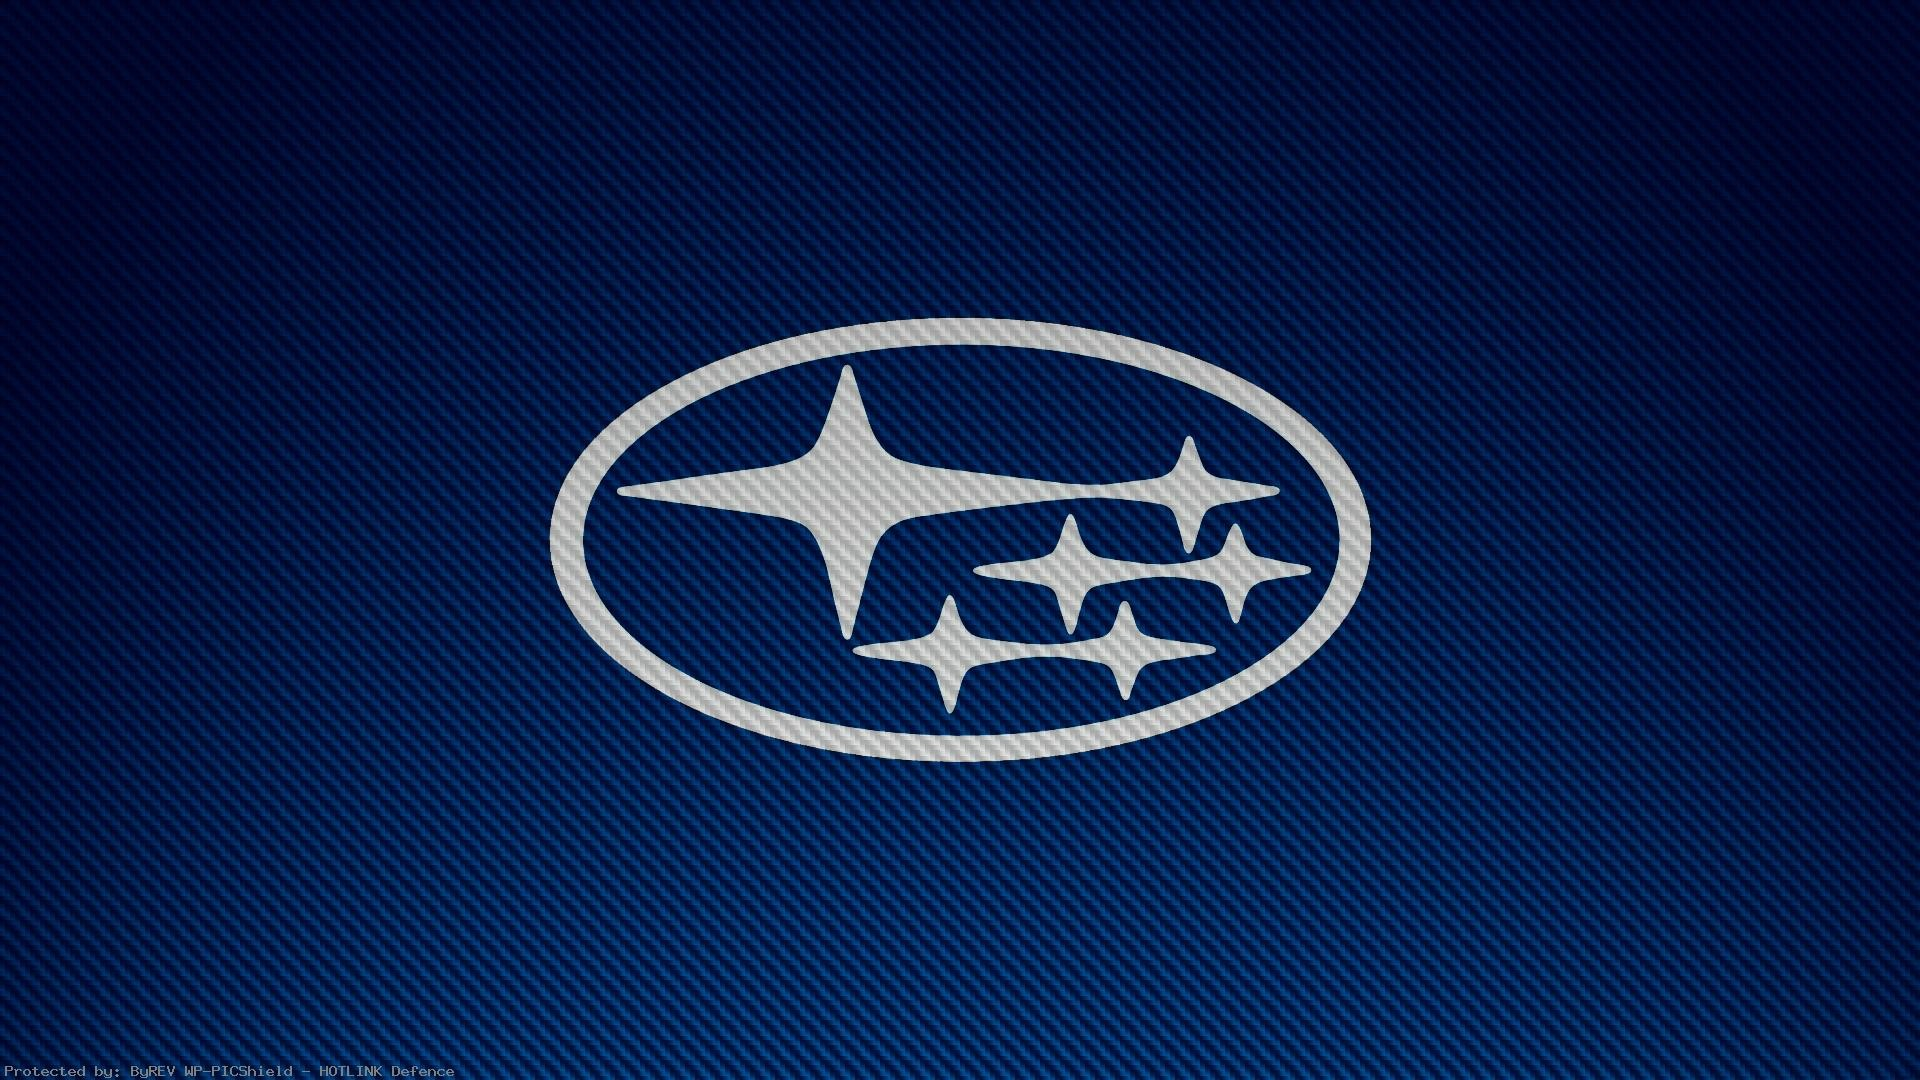 Subaru-Logo-High-Definition-wallpaper-wp4409516